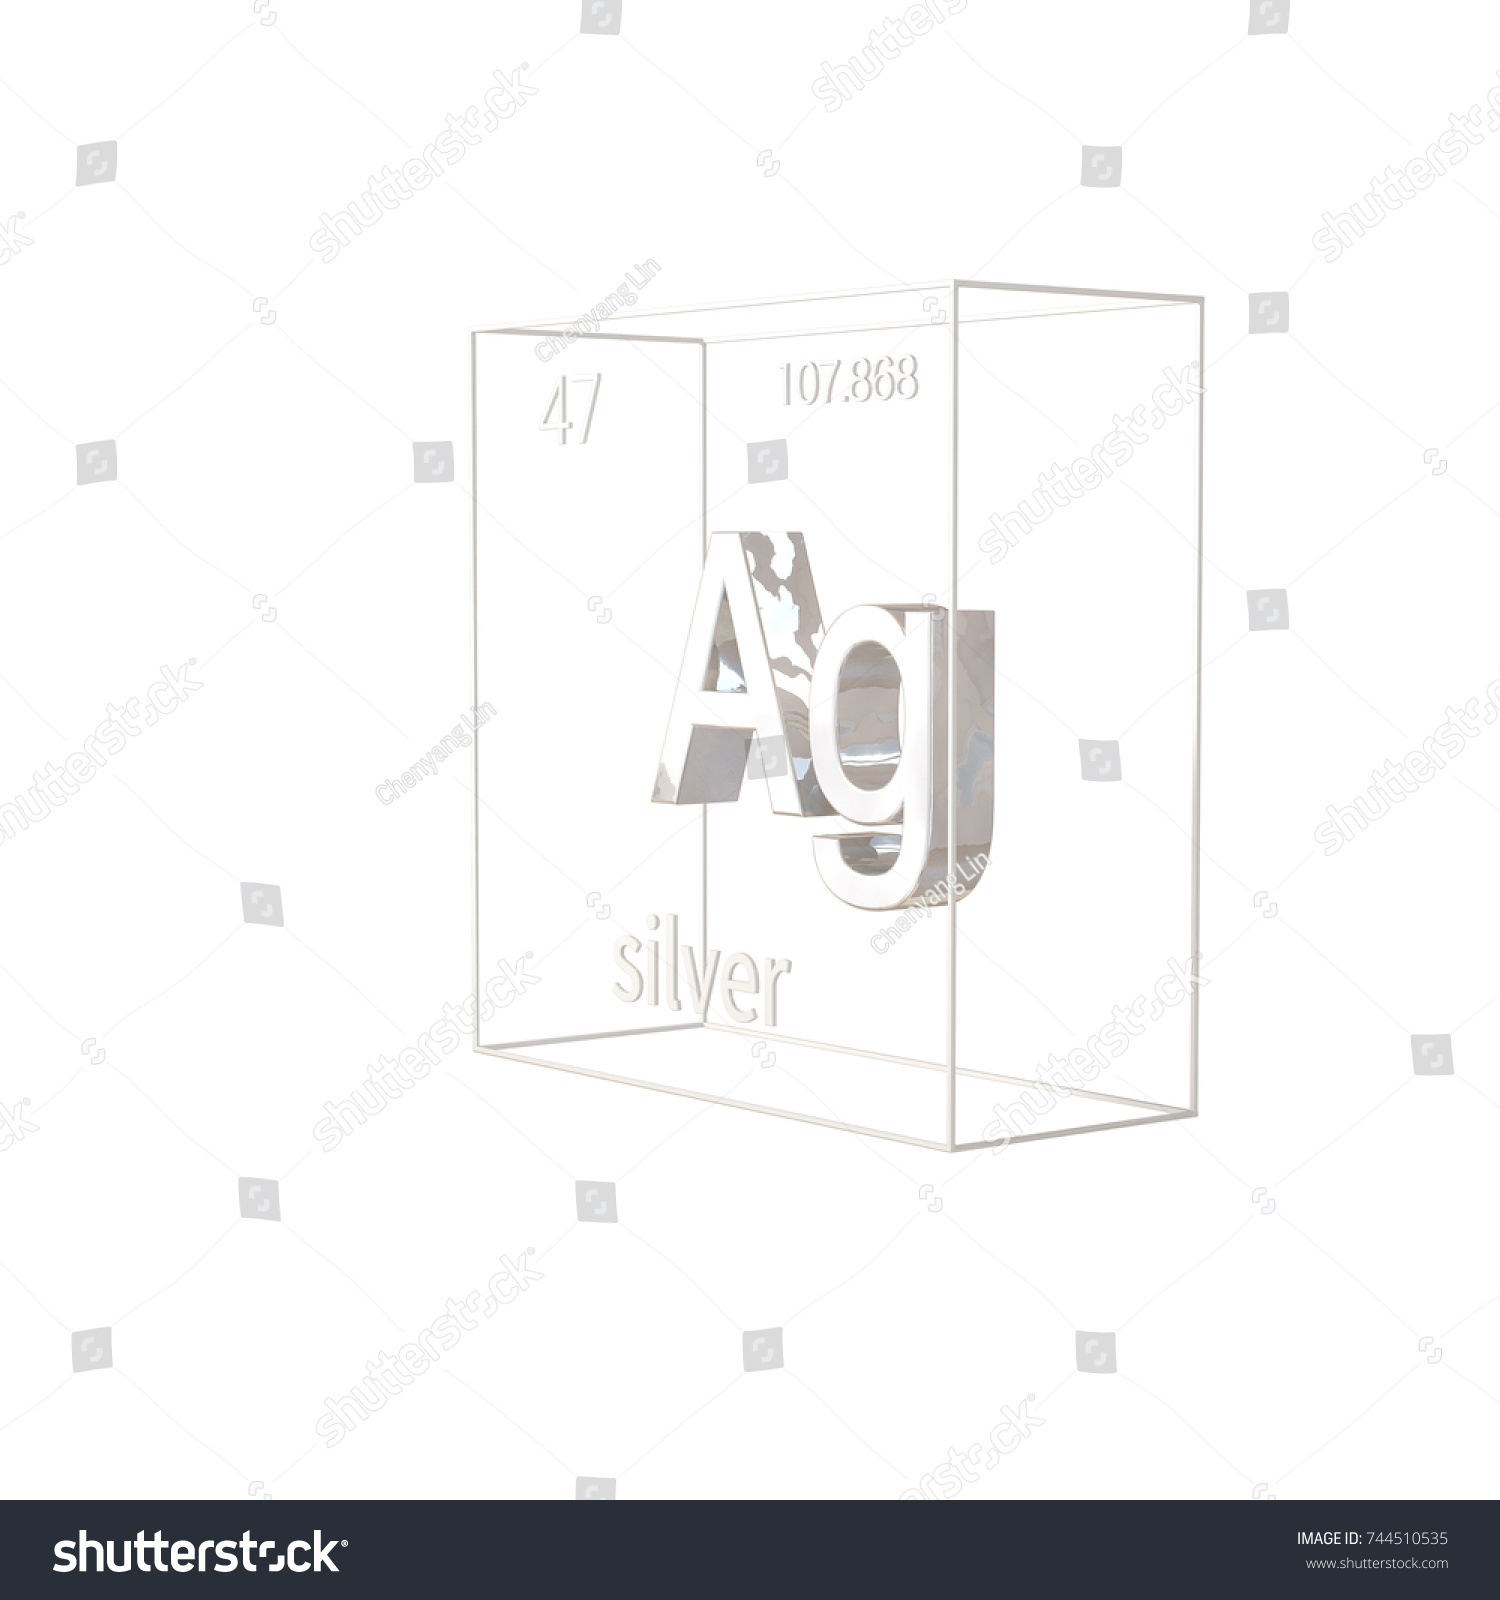 3d render silver chemical element atomic stock illustration 3d render silver chemical element atomic number and atomic weight chemical element of gamestrikefo Gallery